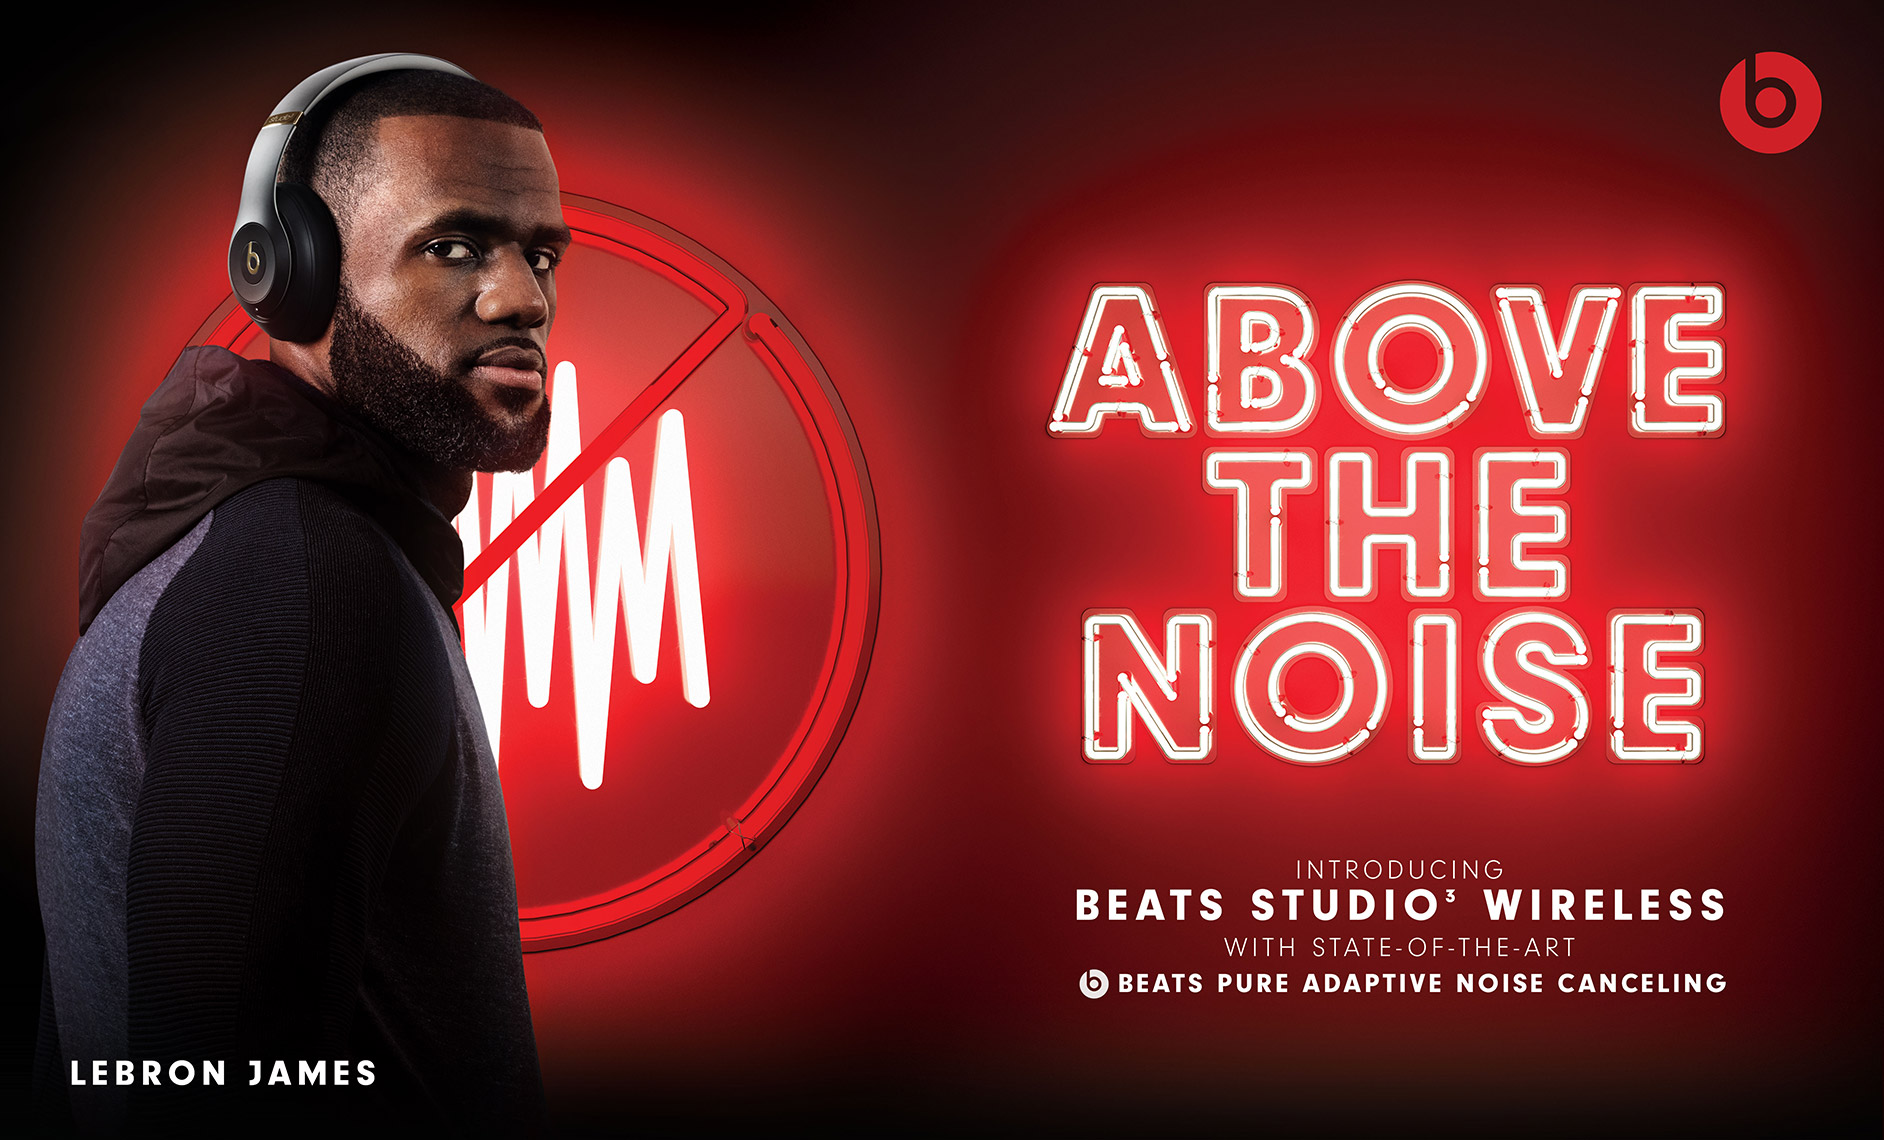 LeBron-James_BeatsbyDre